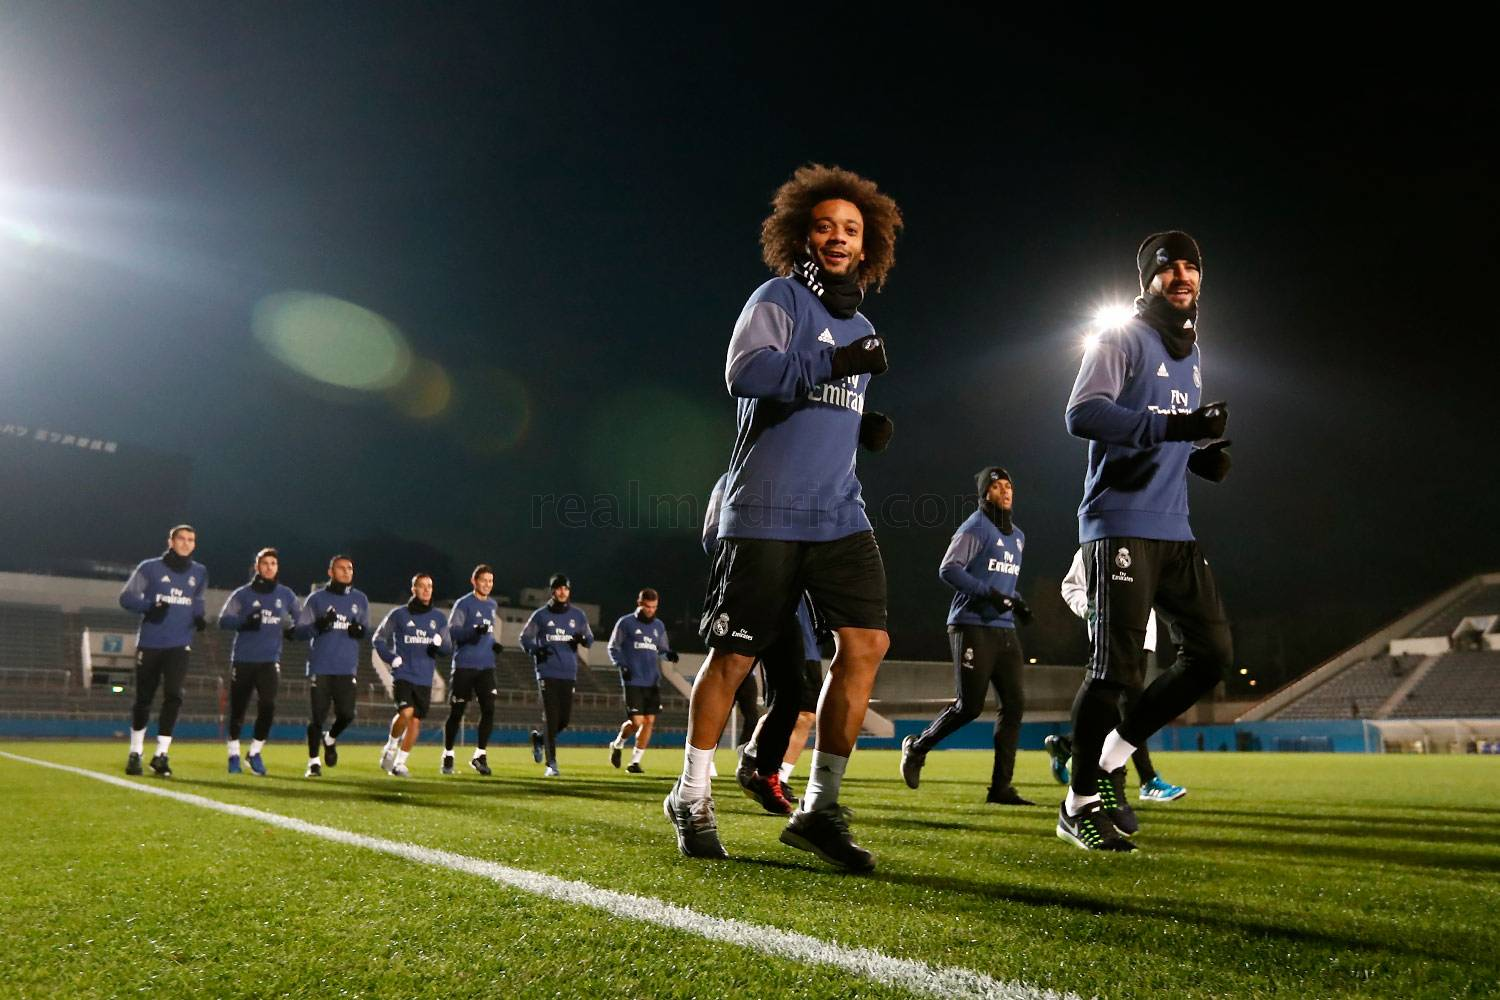 Real Madrid - Entrenamiento del Real Madrid en Yokohama - 12-12-2016